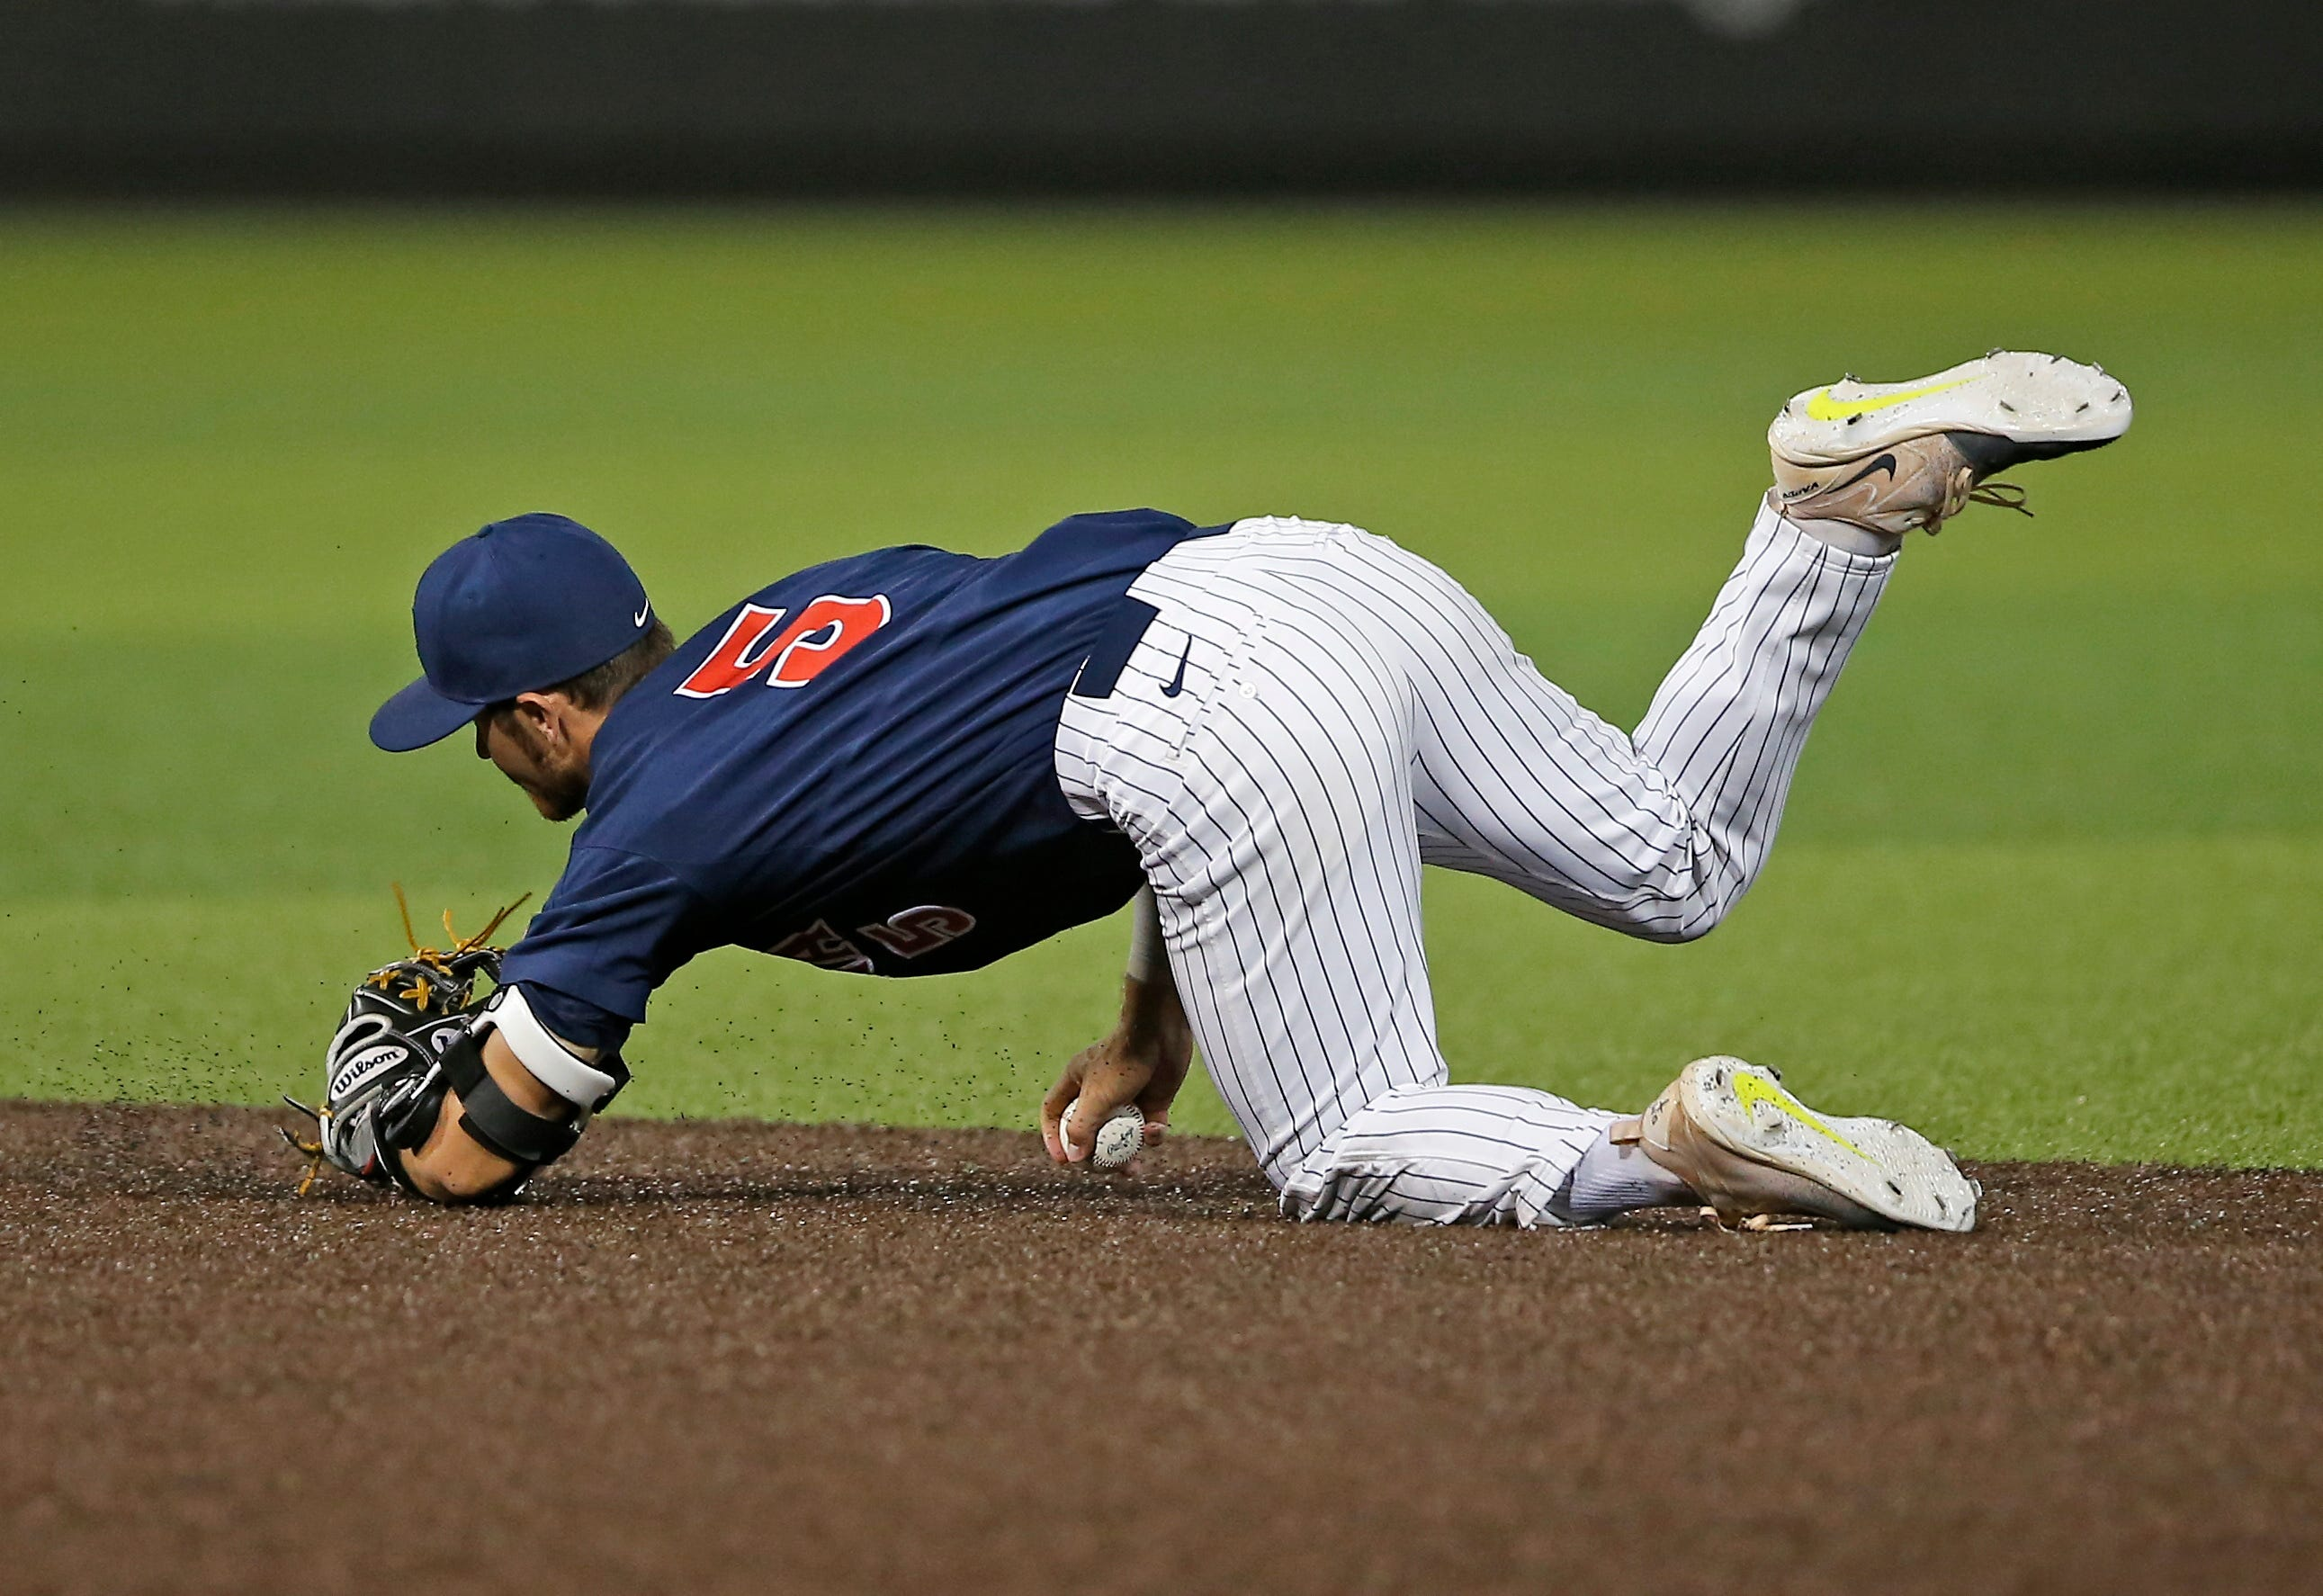 Arizona baseball falls to Sam Houston State in NCAA regional opener